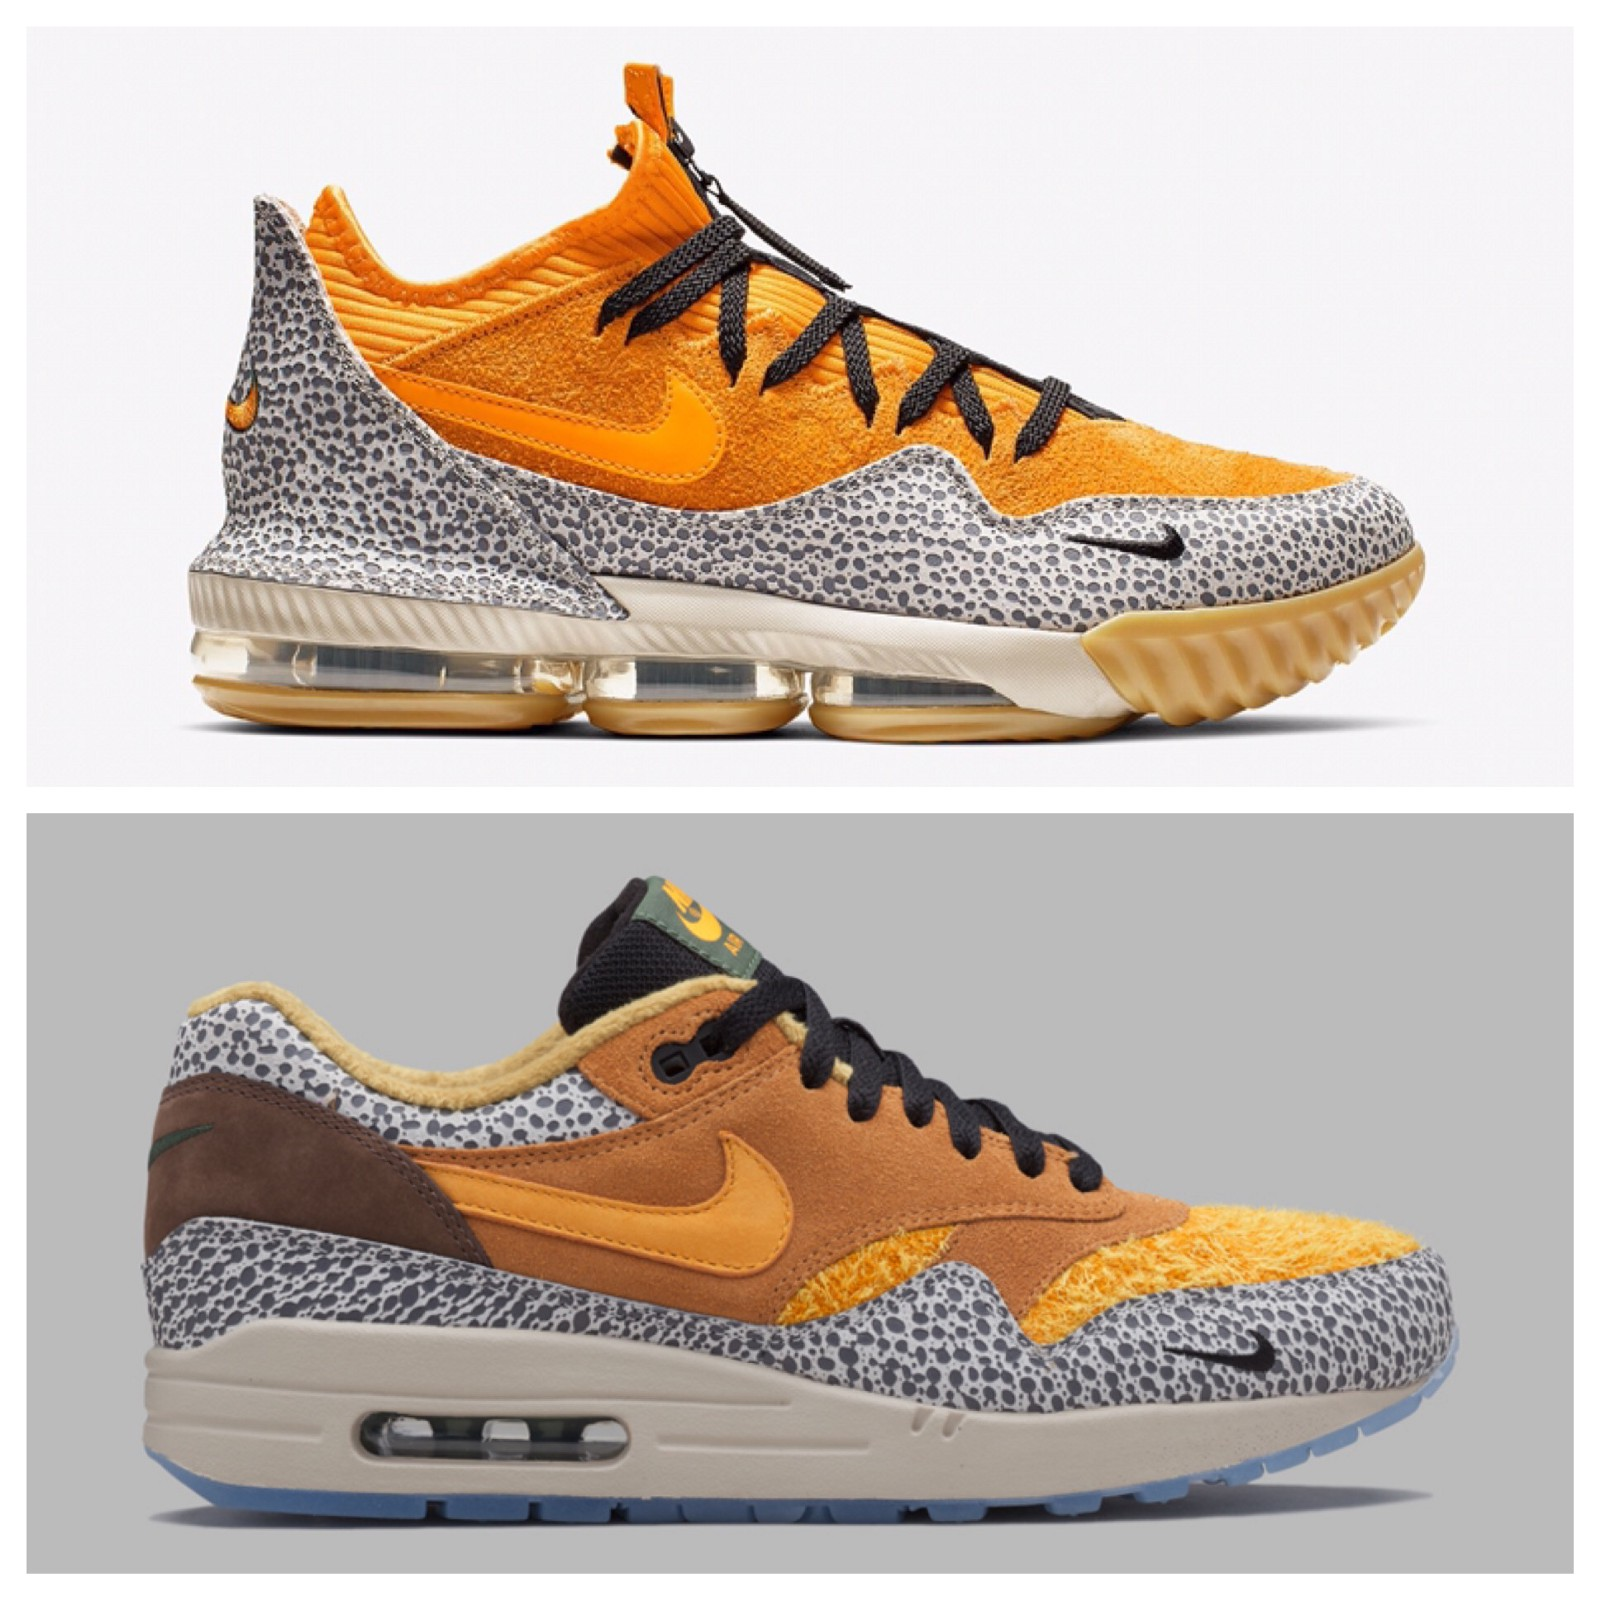 a8c1f5974ff The upcoming LeBron 16 Low x Atmos and the previously released Air Max 1 x  Atmos  Safari